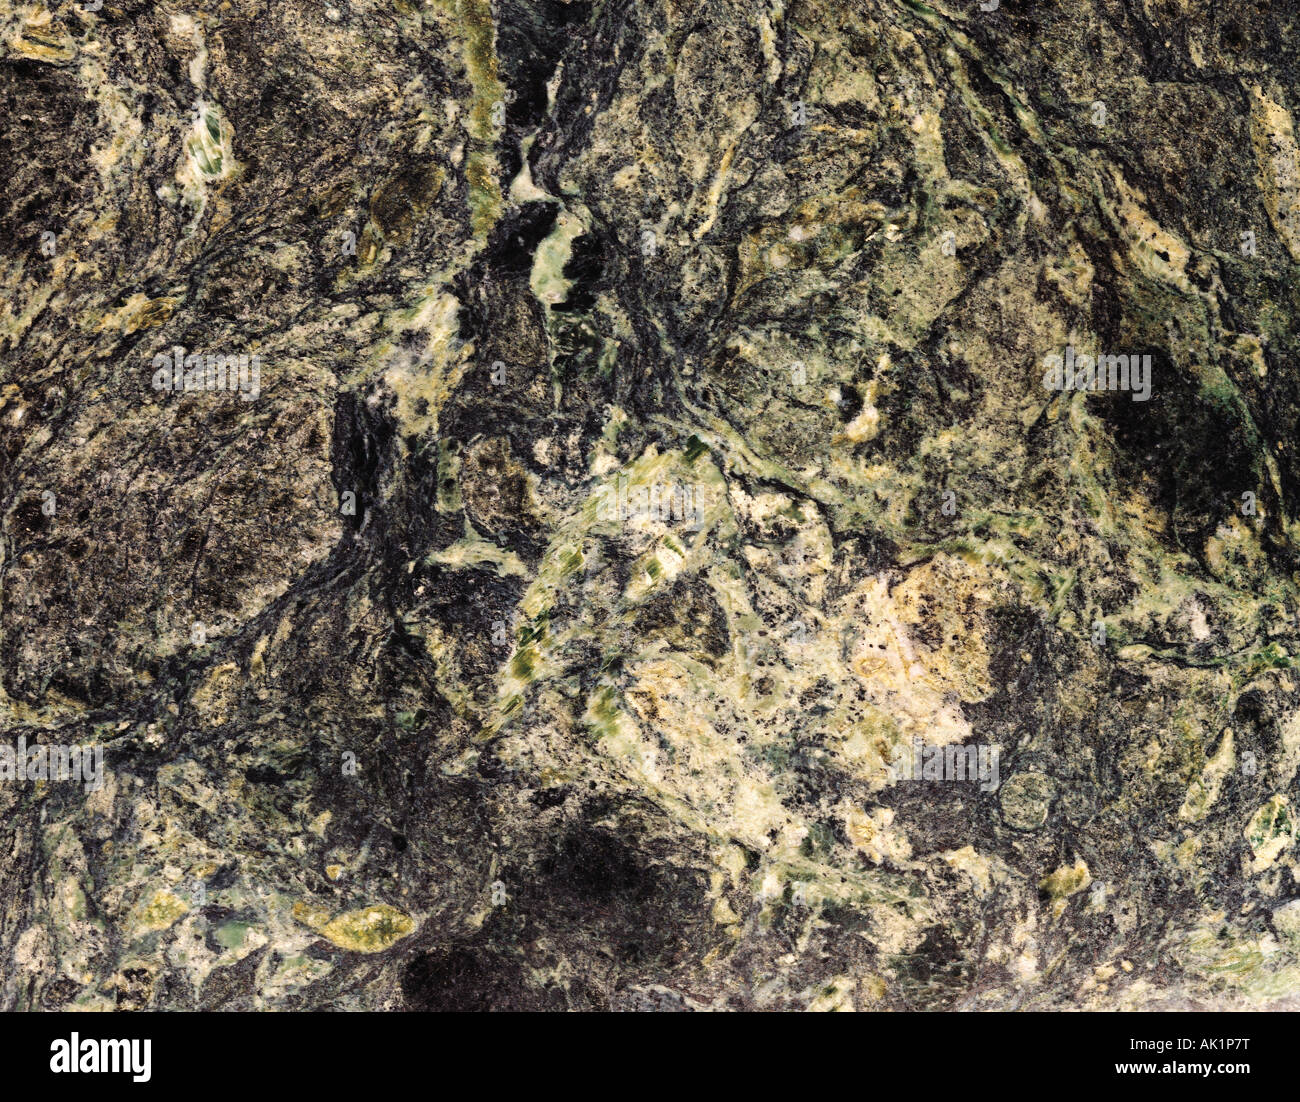 Still life of polished green marble surface. Stock Photo